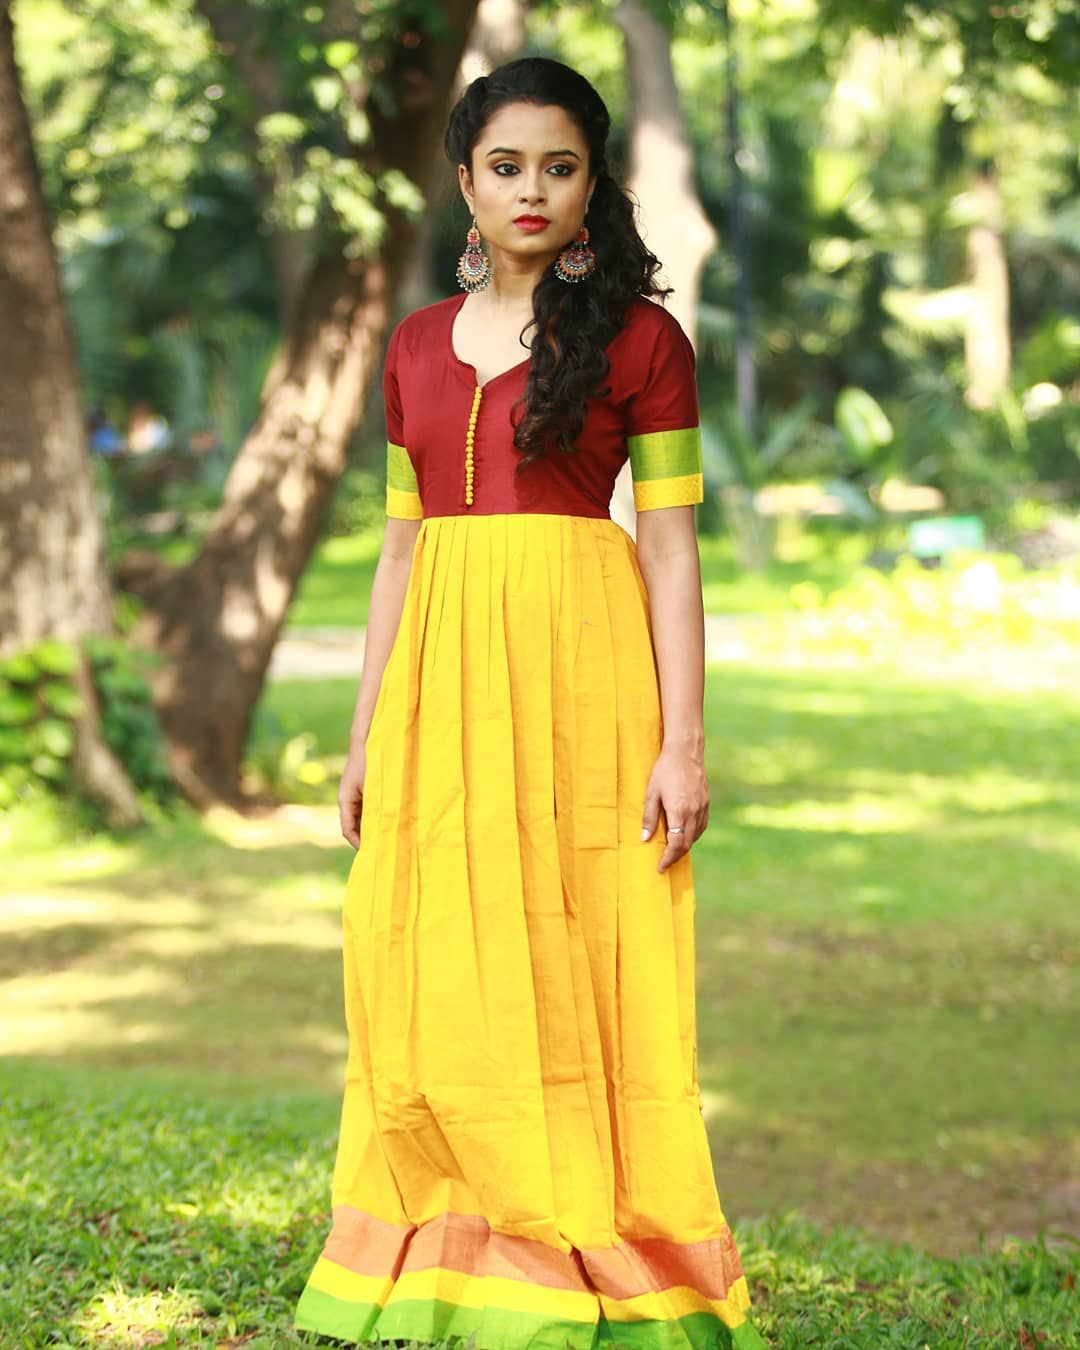 290fbc2833 Try These Traditional Maxi Dresses on Next Festival | Indian Maxi ...